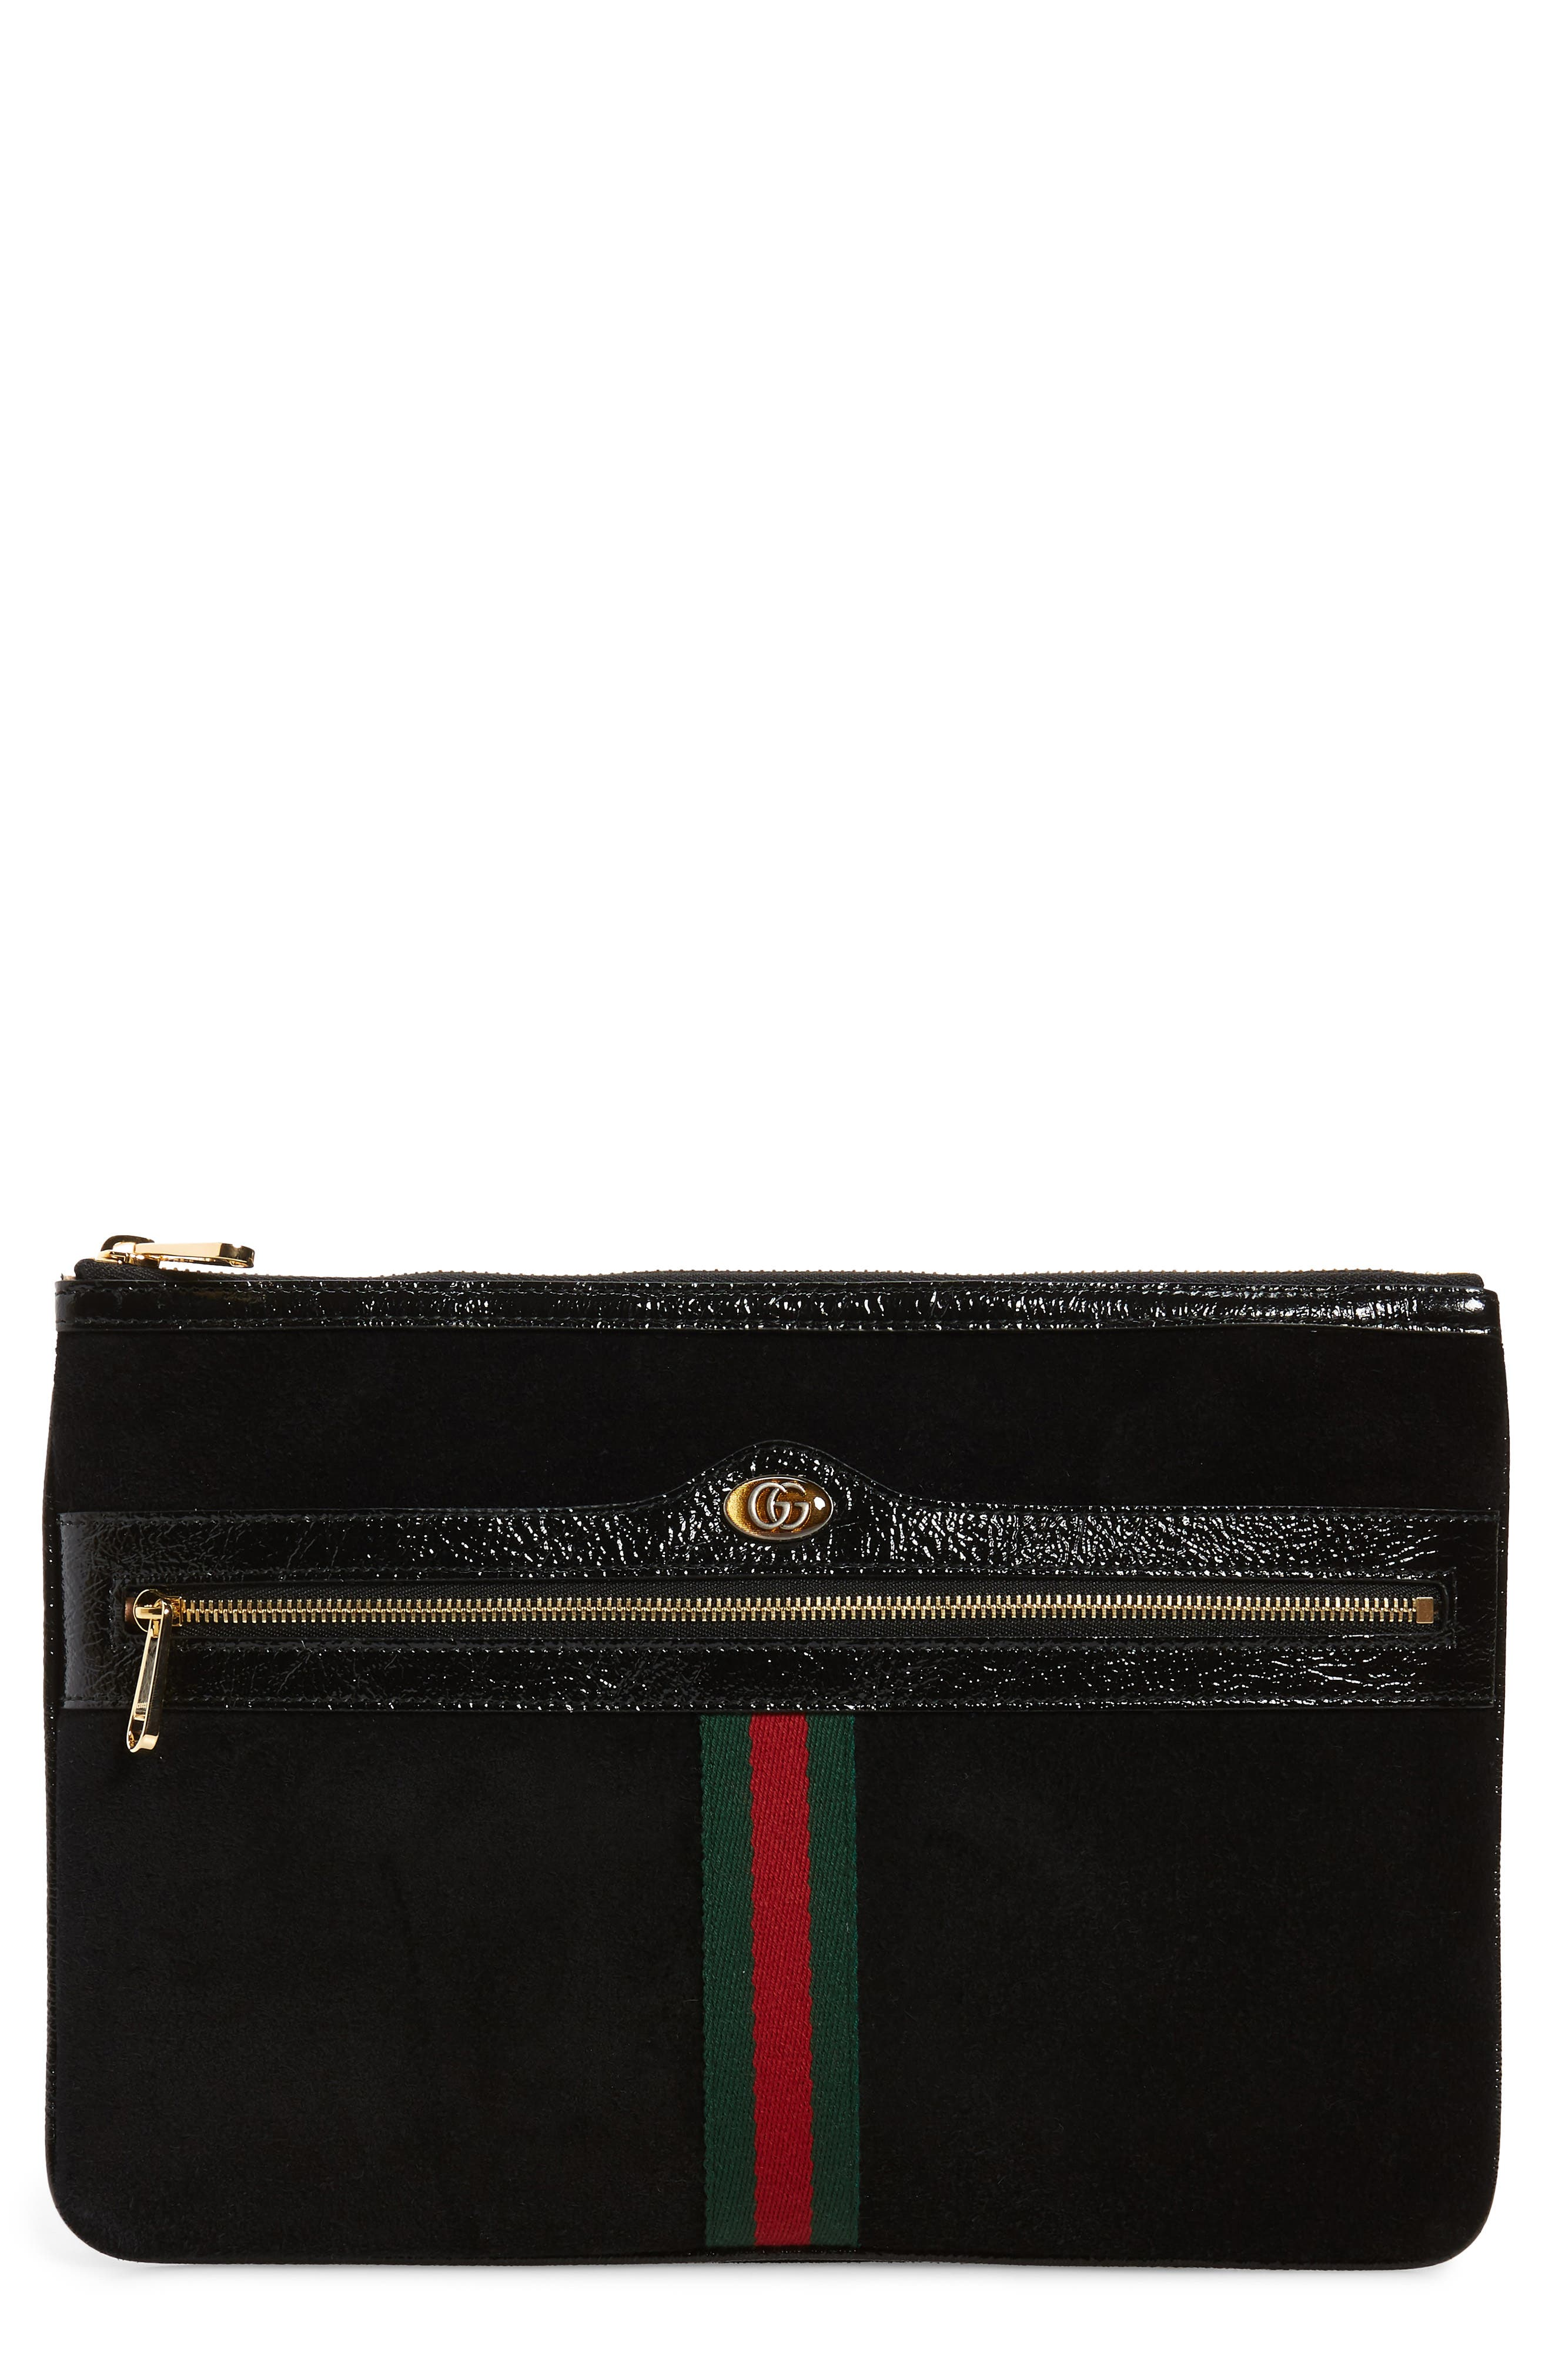 GUCCI Ophidia Suede Pouch, Main, color, NERO/ VERT/ RED